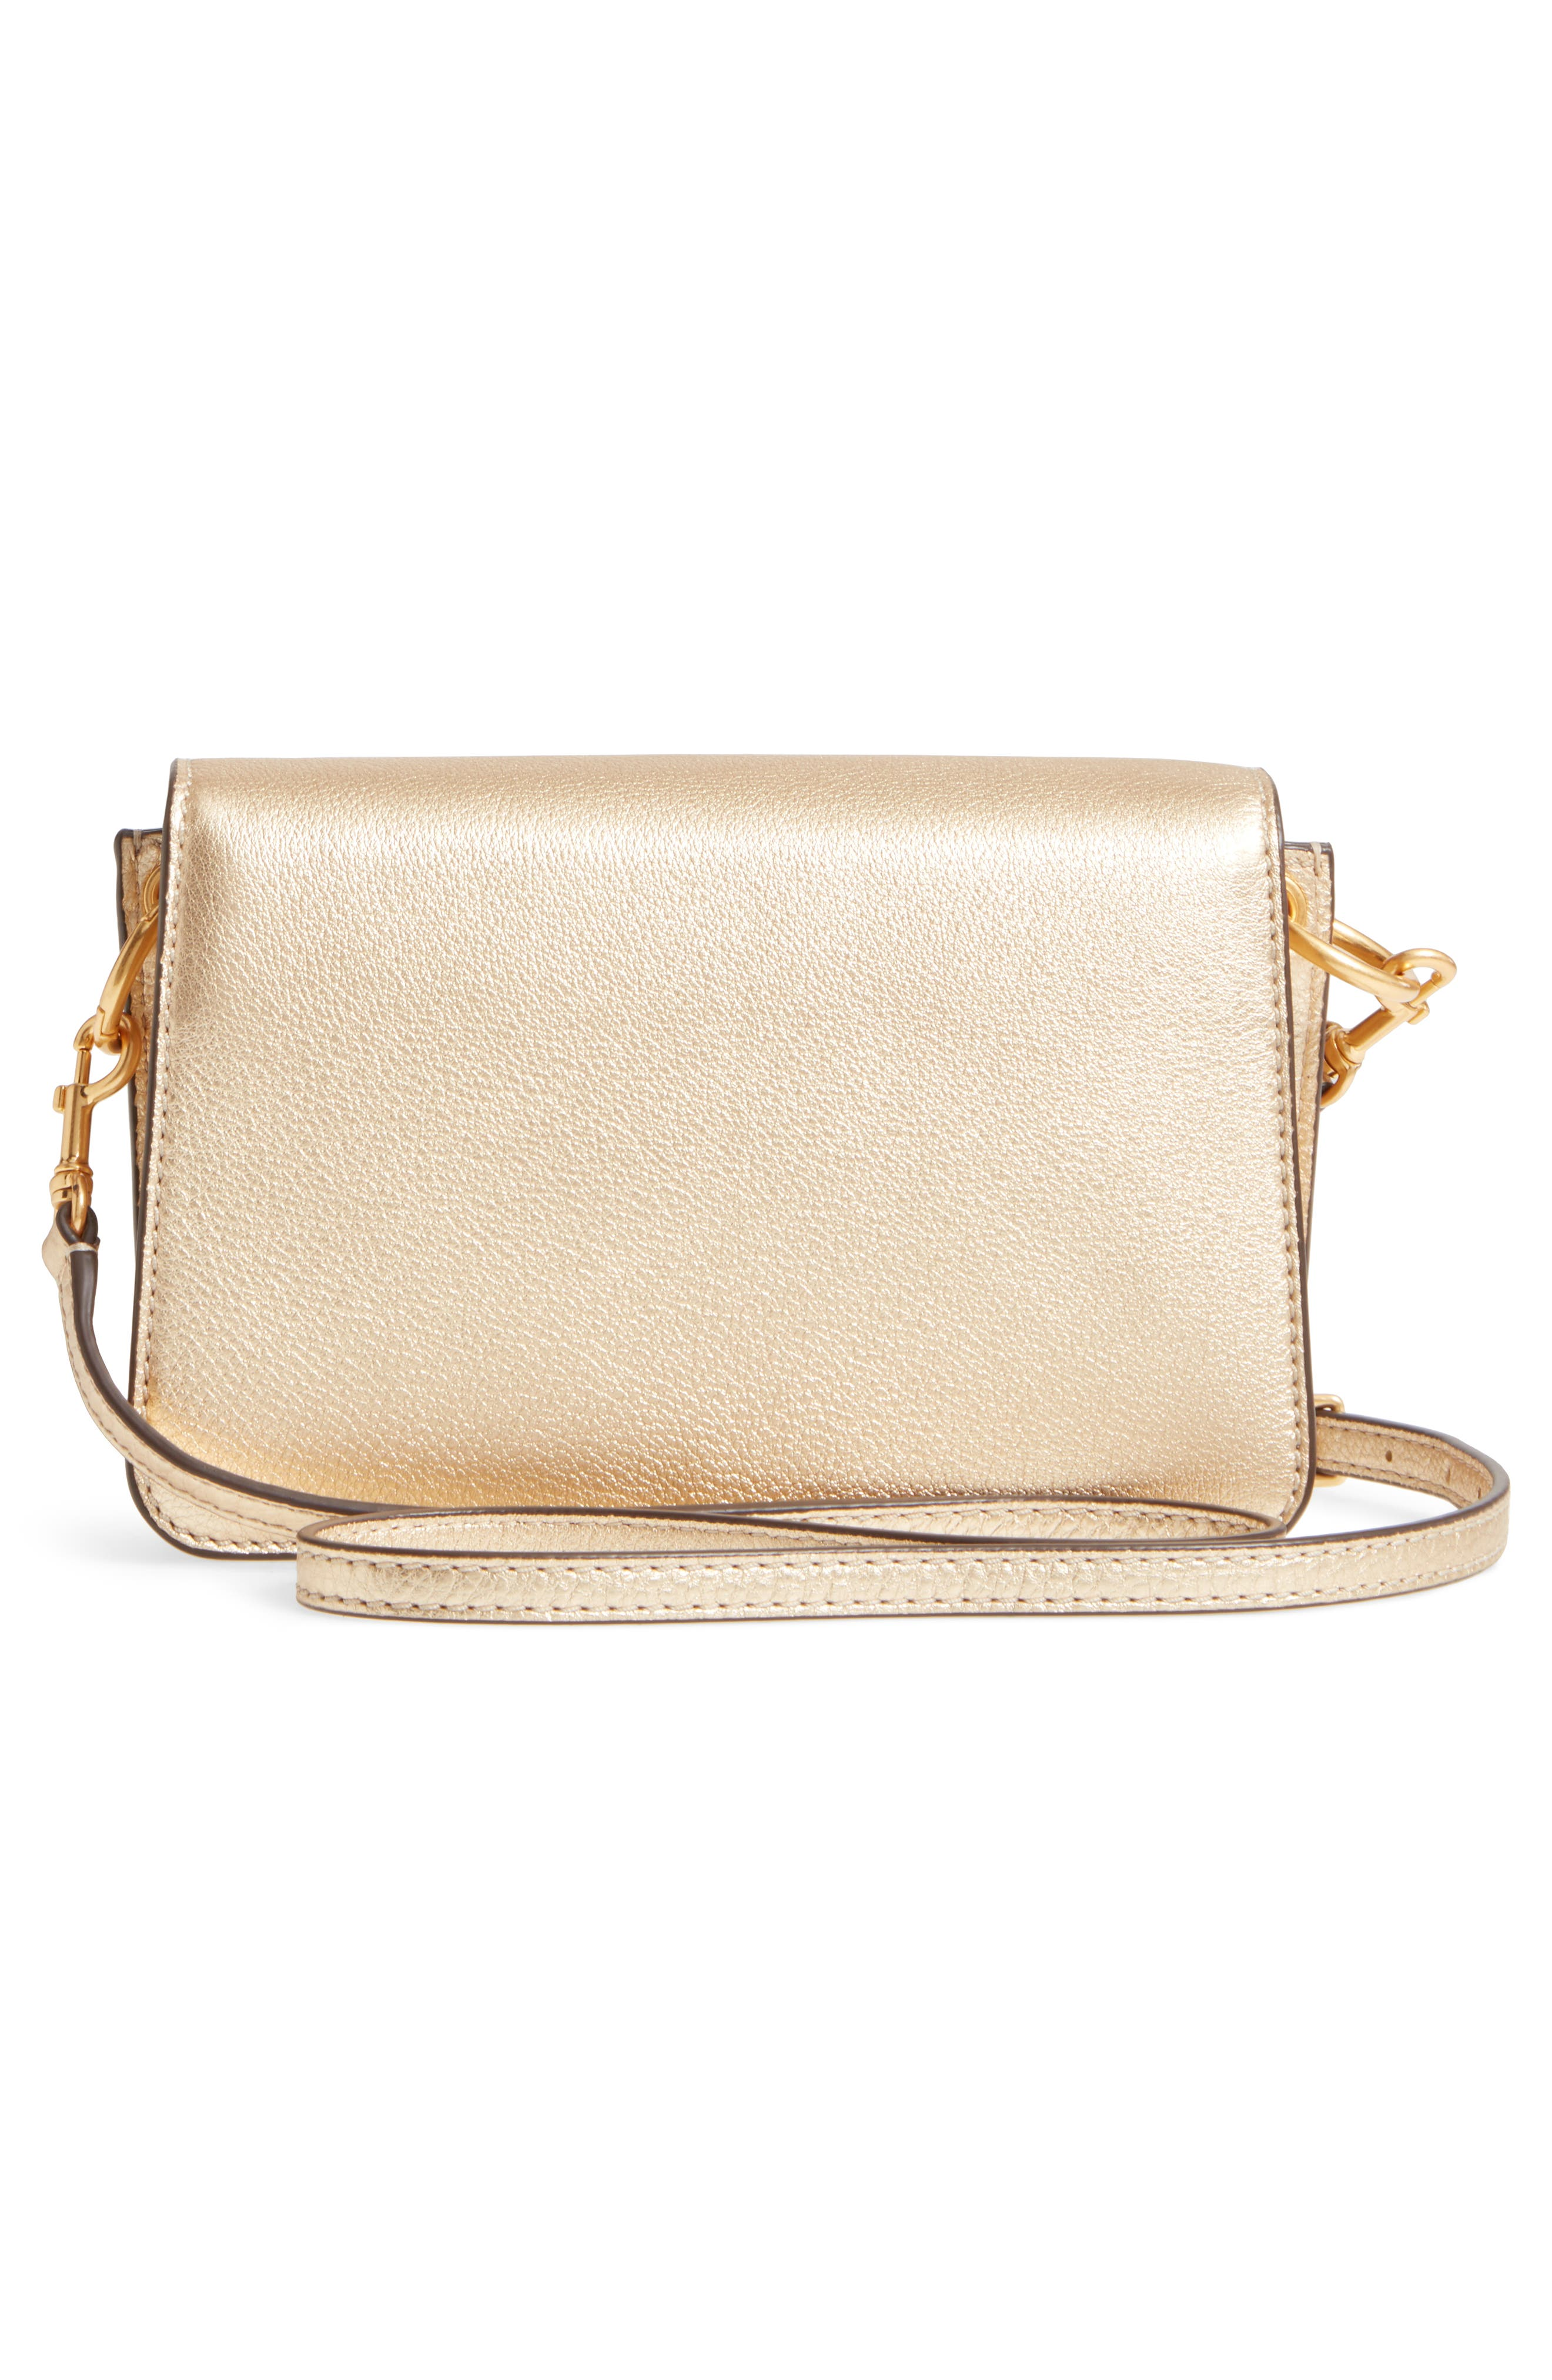 McGraw Metallic Leather Shoulder Bag,                             Alternate thumbnail 3, color,                             Gold